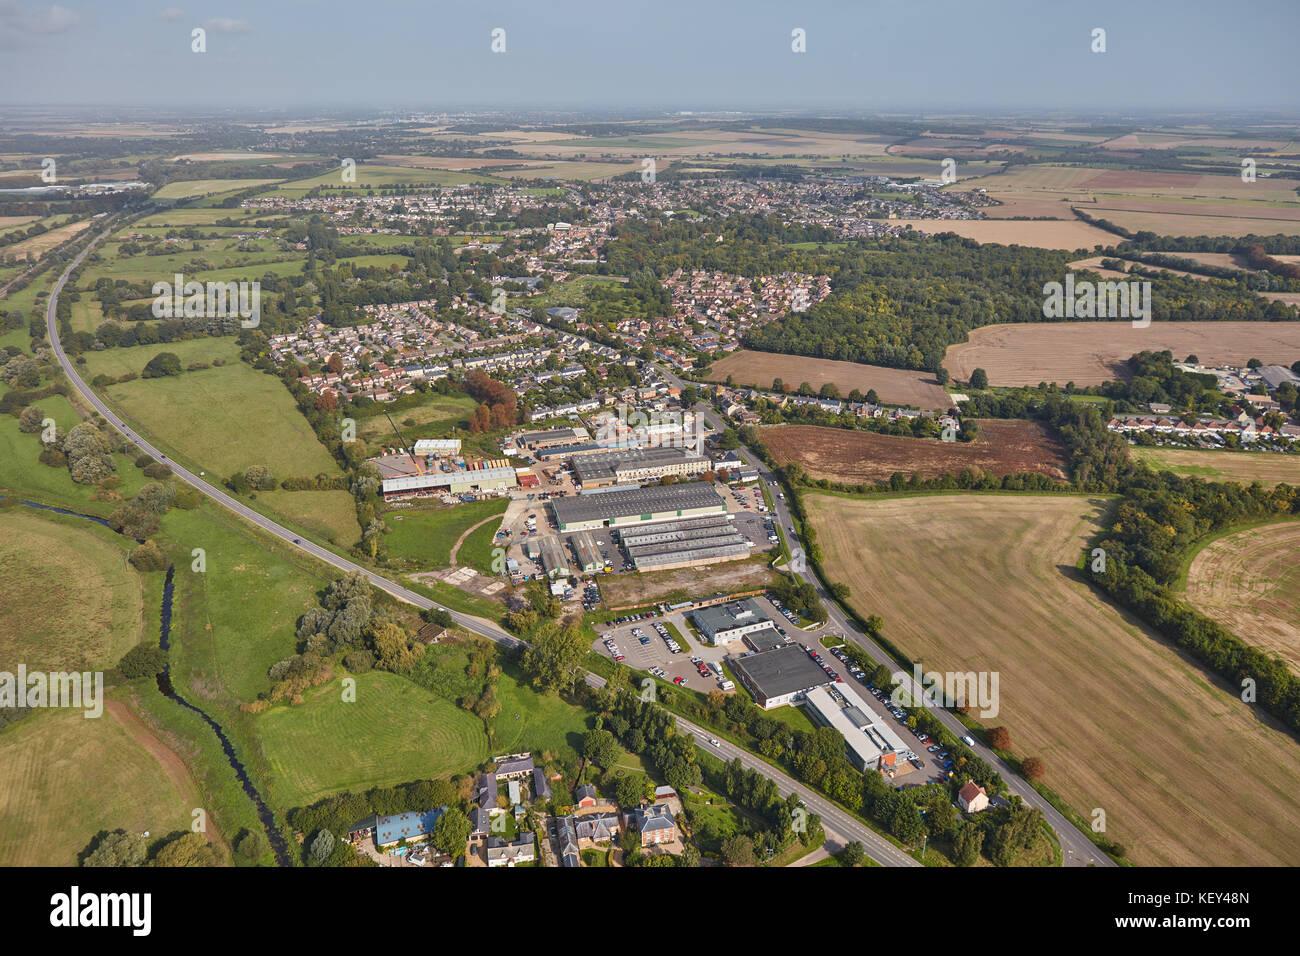 An aerial view of the large Cambridgeshire village of Sawston - Stock Image